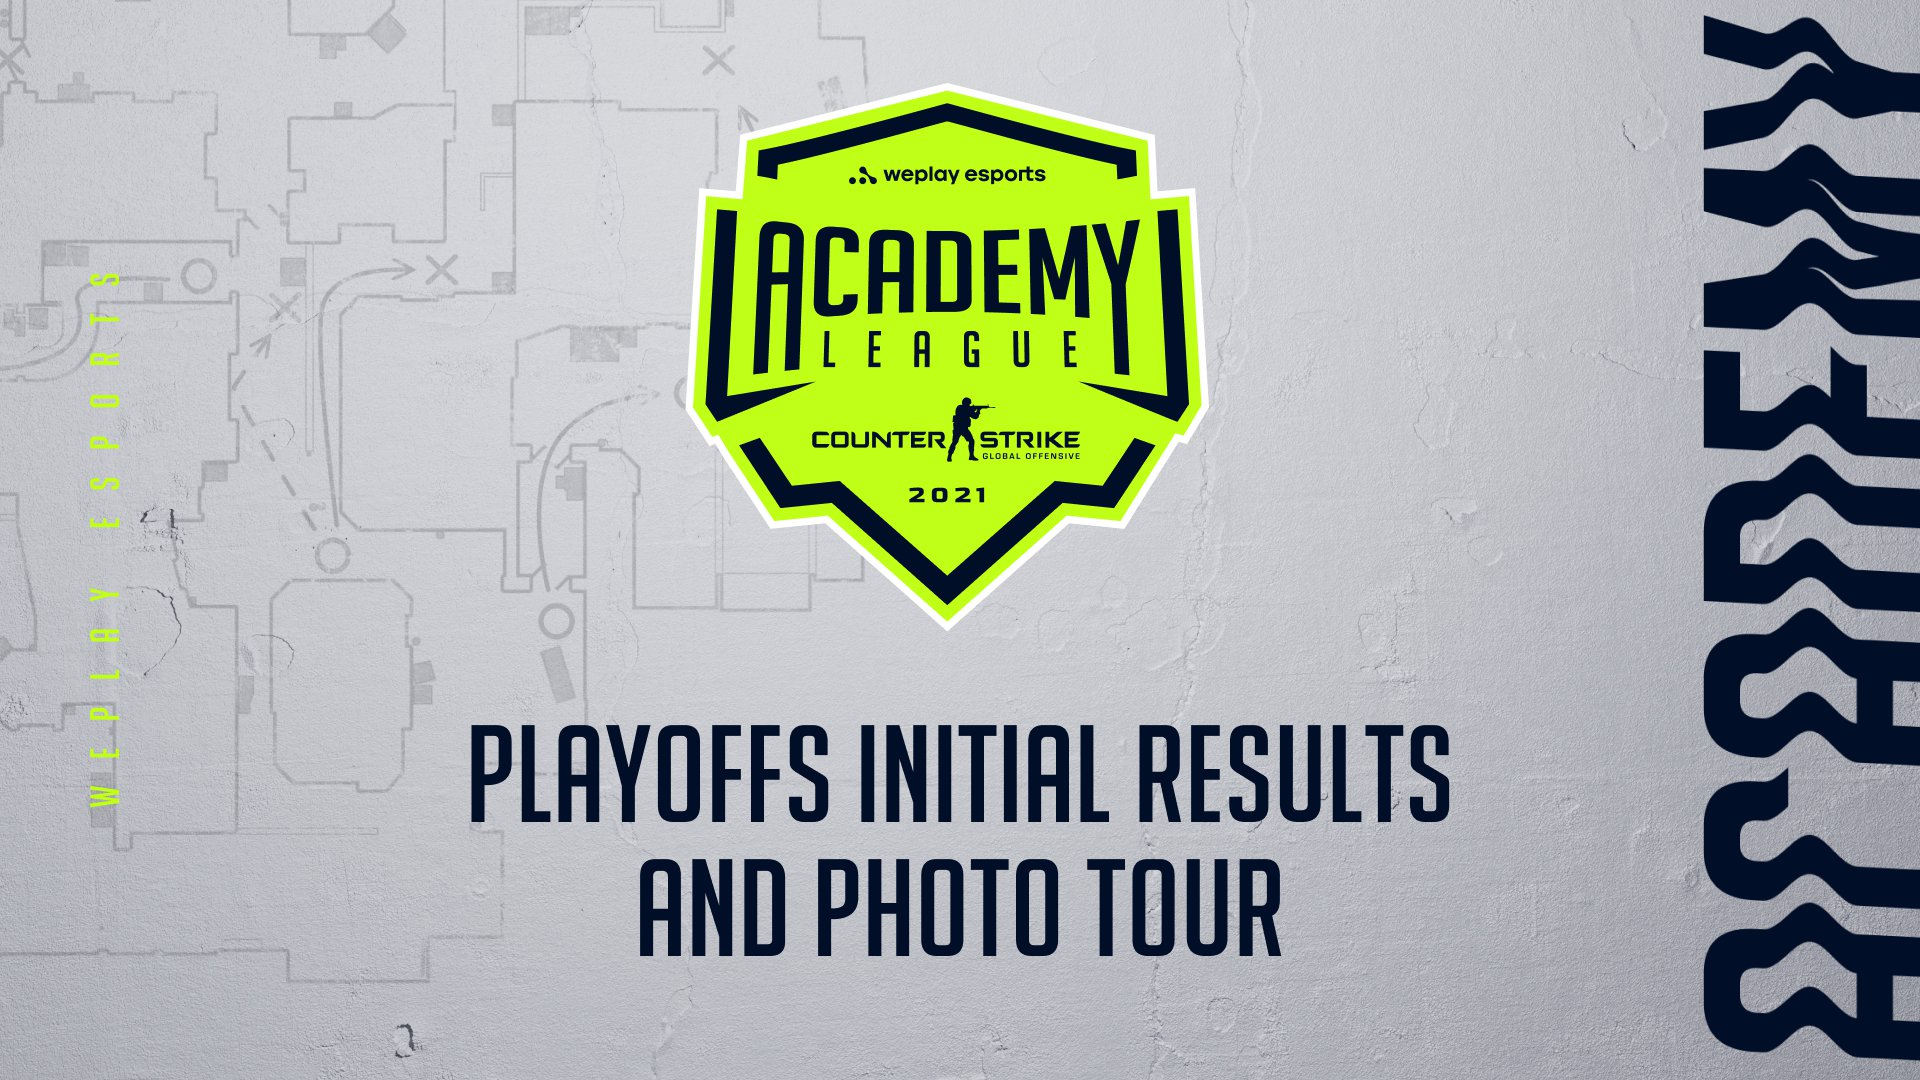 WePlay Academy League Season 1: playoffs initial results and photo tour. Image: WePlay Holding